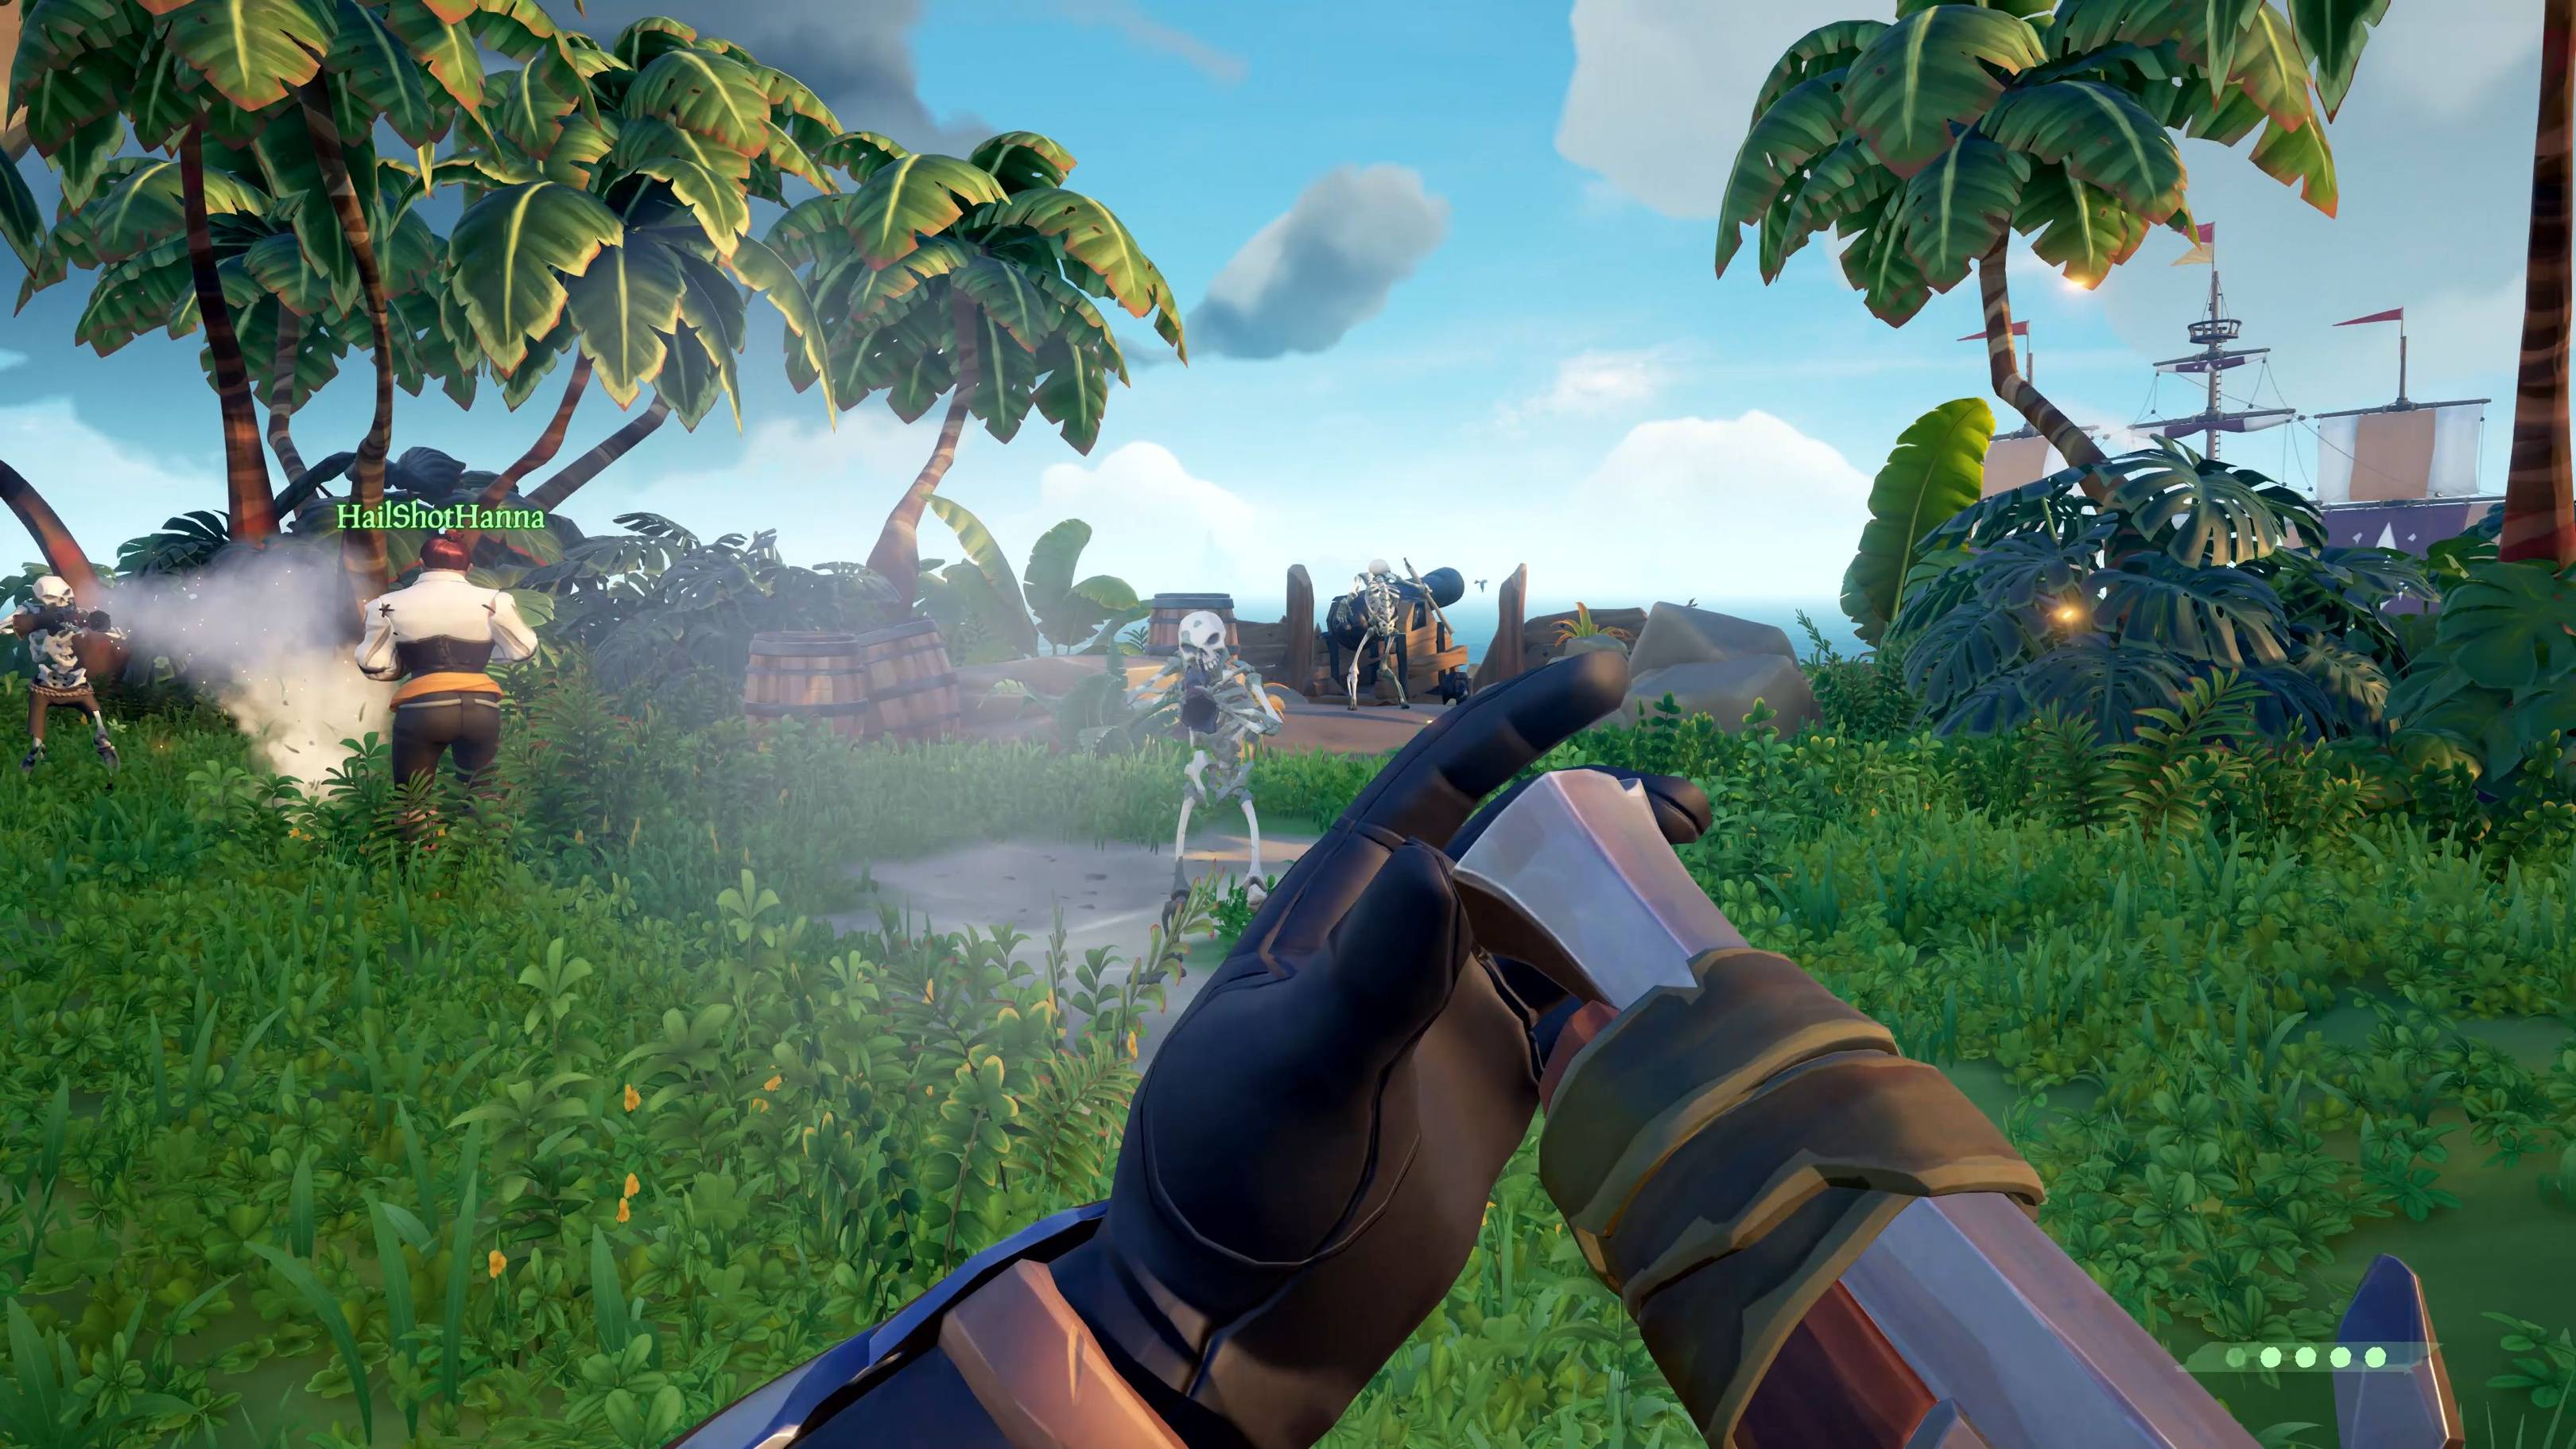 Sea of Thieves hands on: playing with randoms will make you